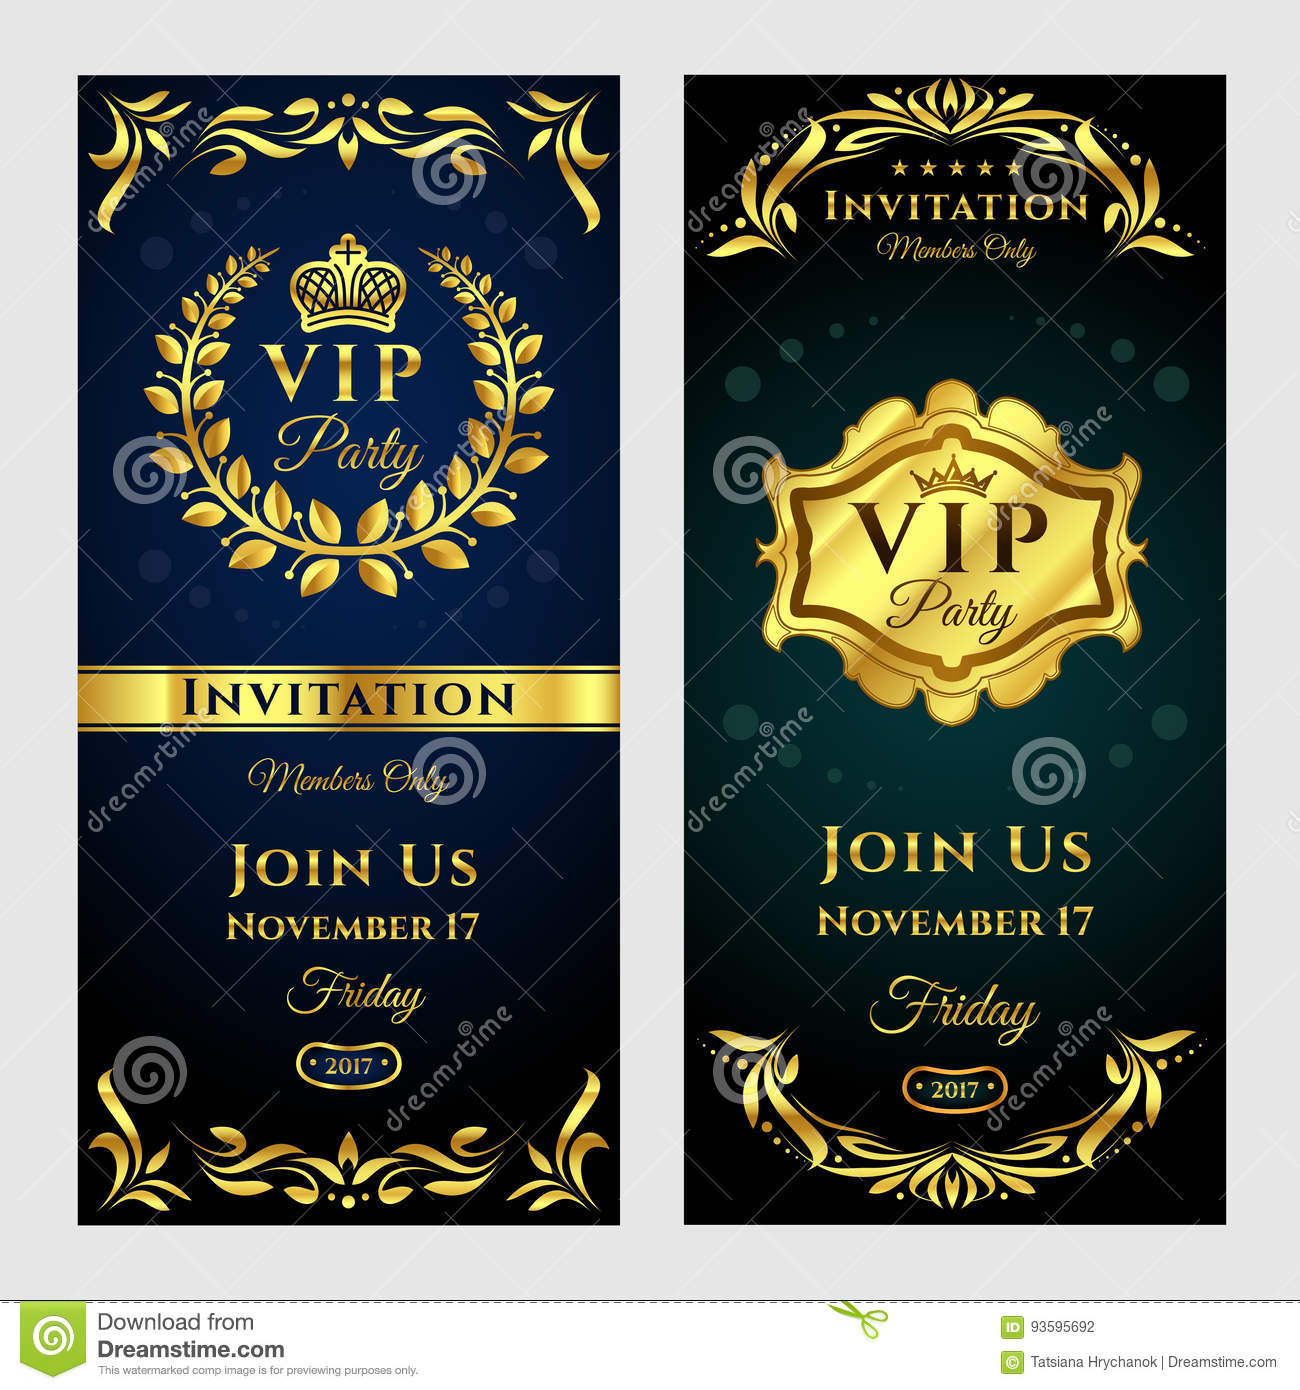 Illustration Set Of Vintage Vip Party Invitation Cards Stock